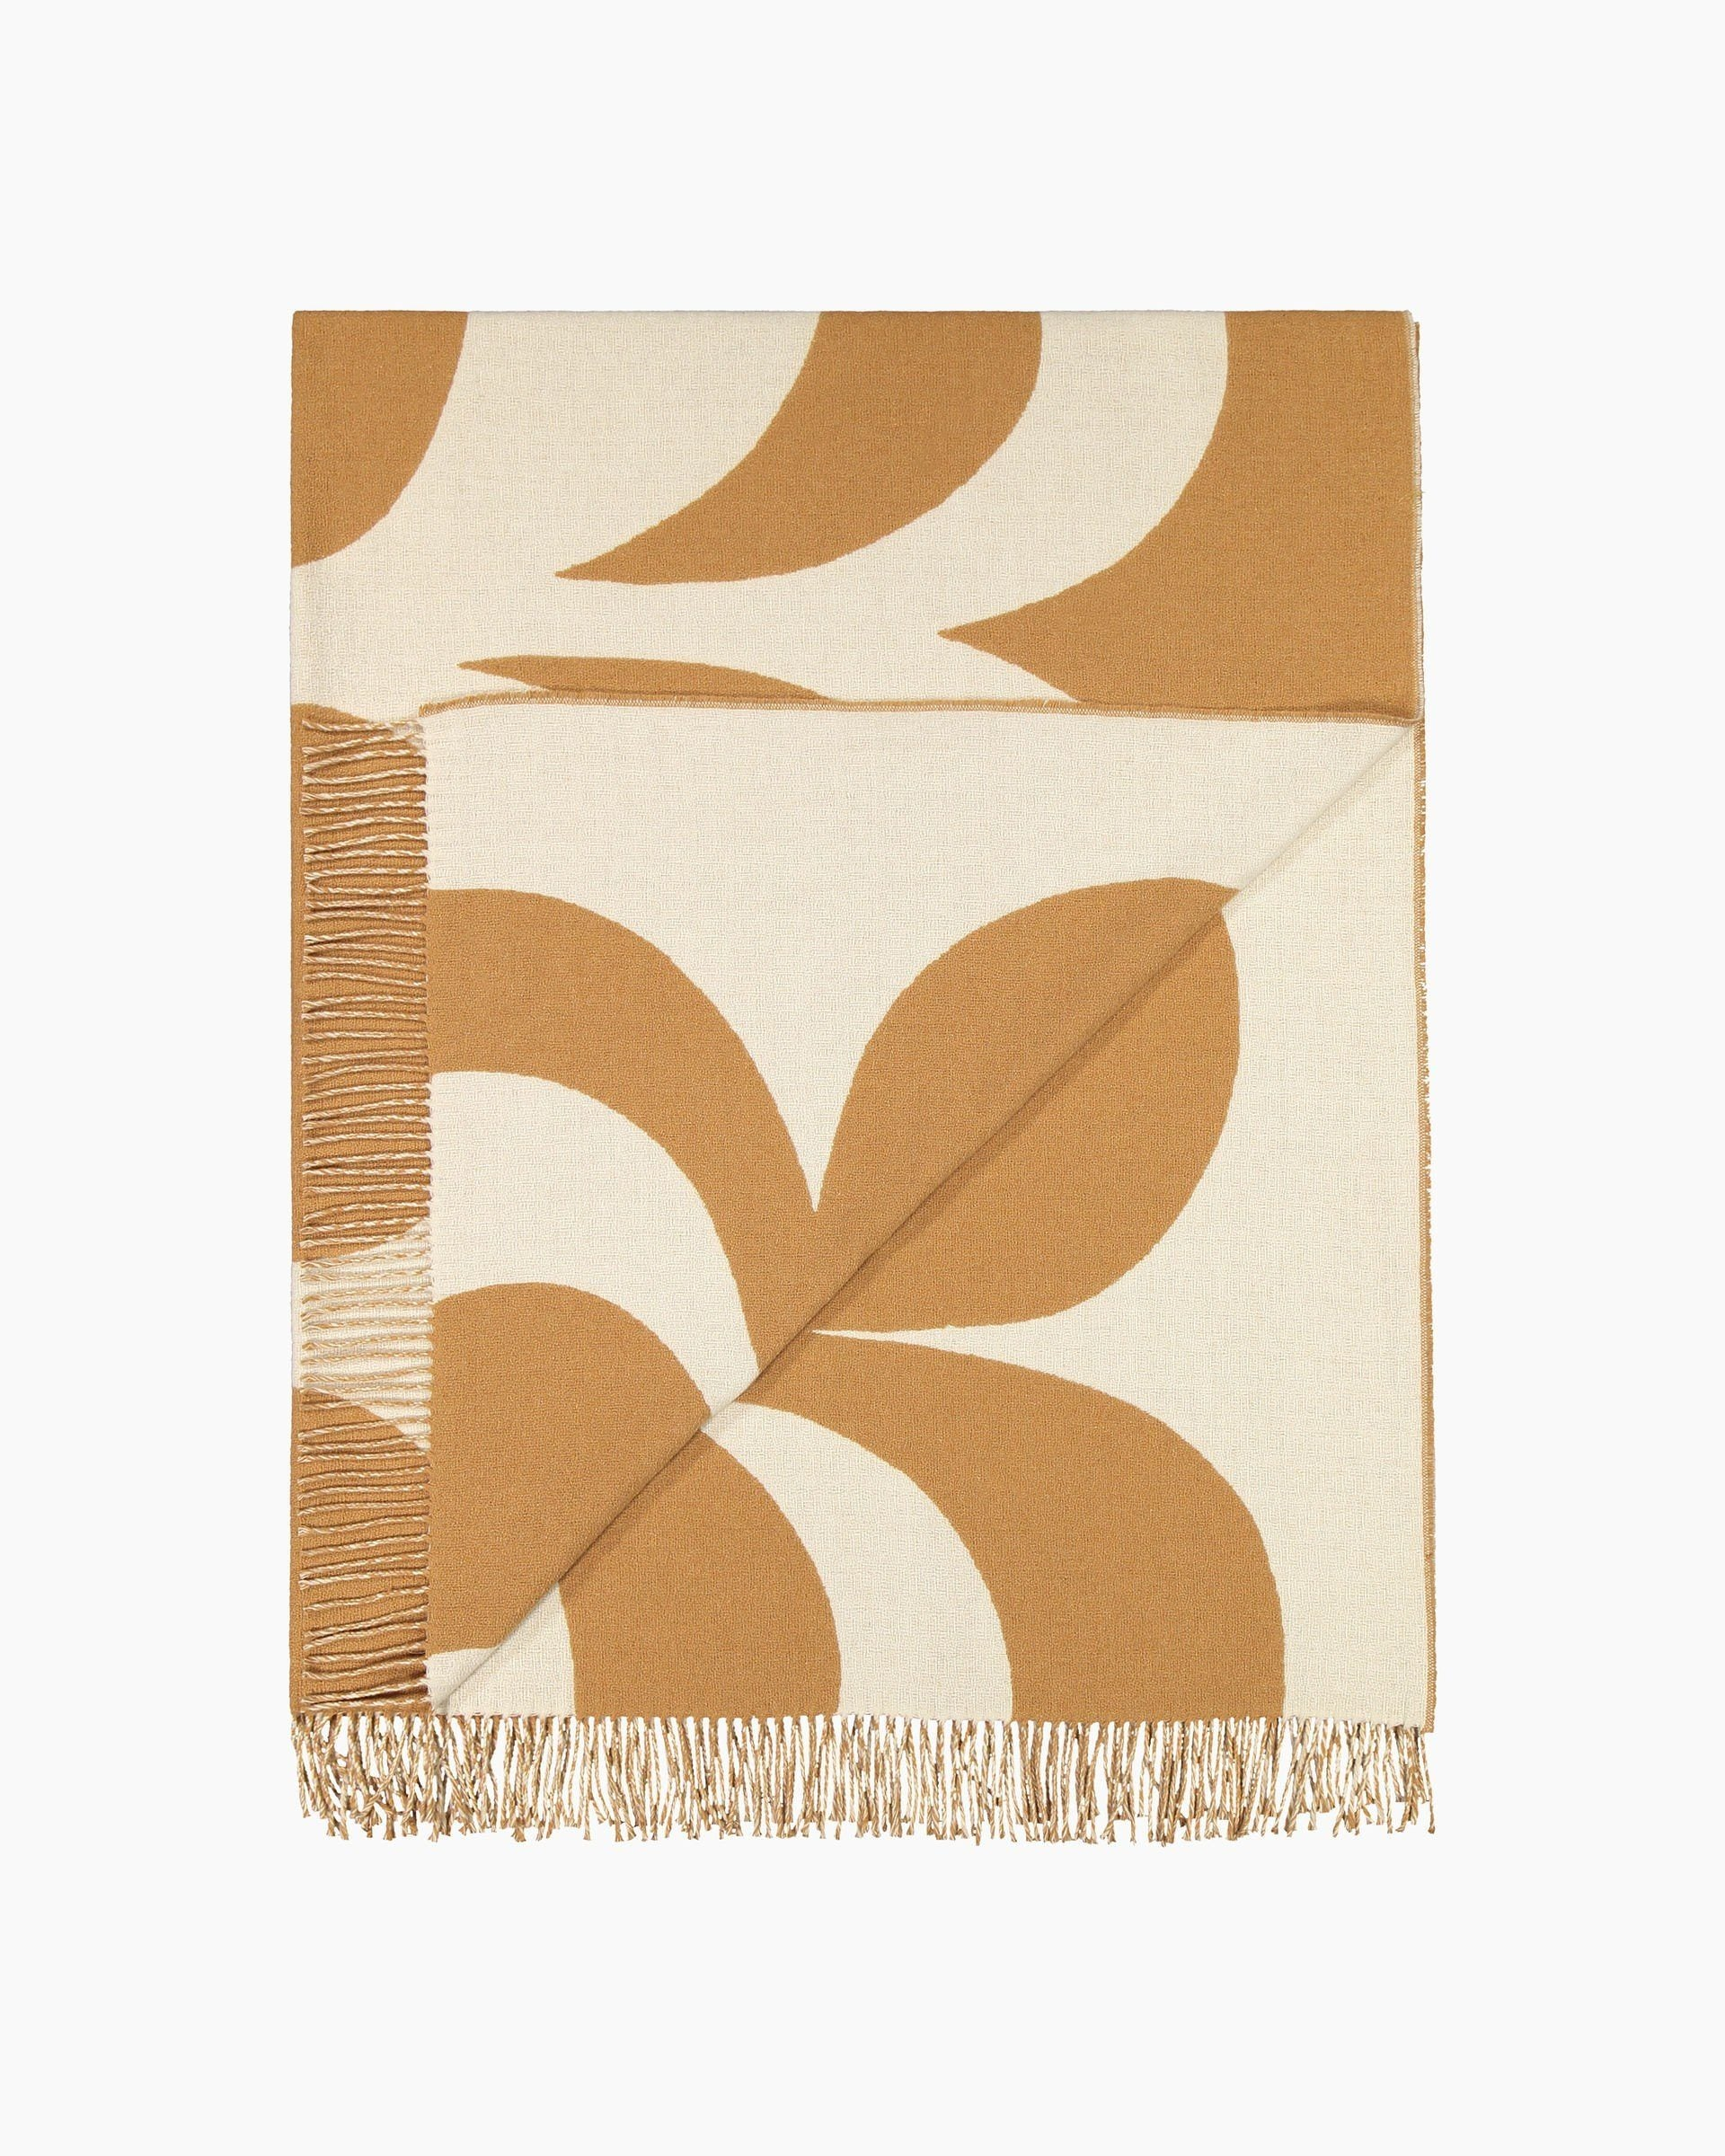 Marimekko, Kaivo  Blanket, Off-White/ Beige / One size- Placewares